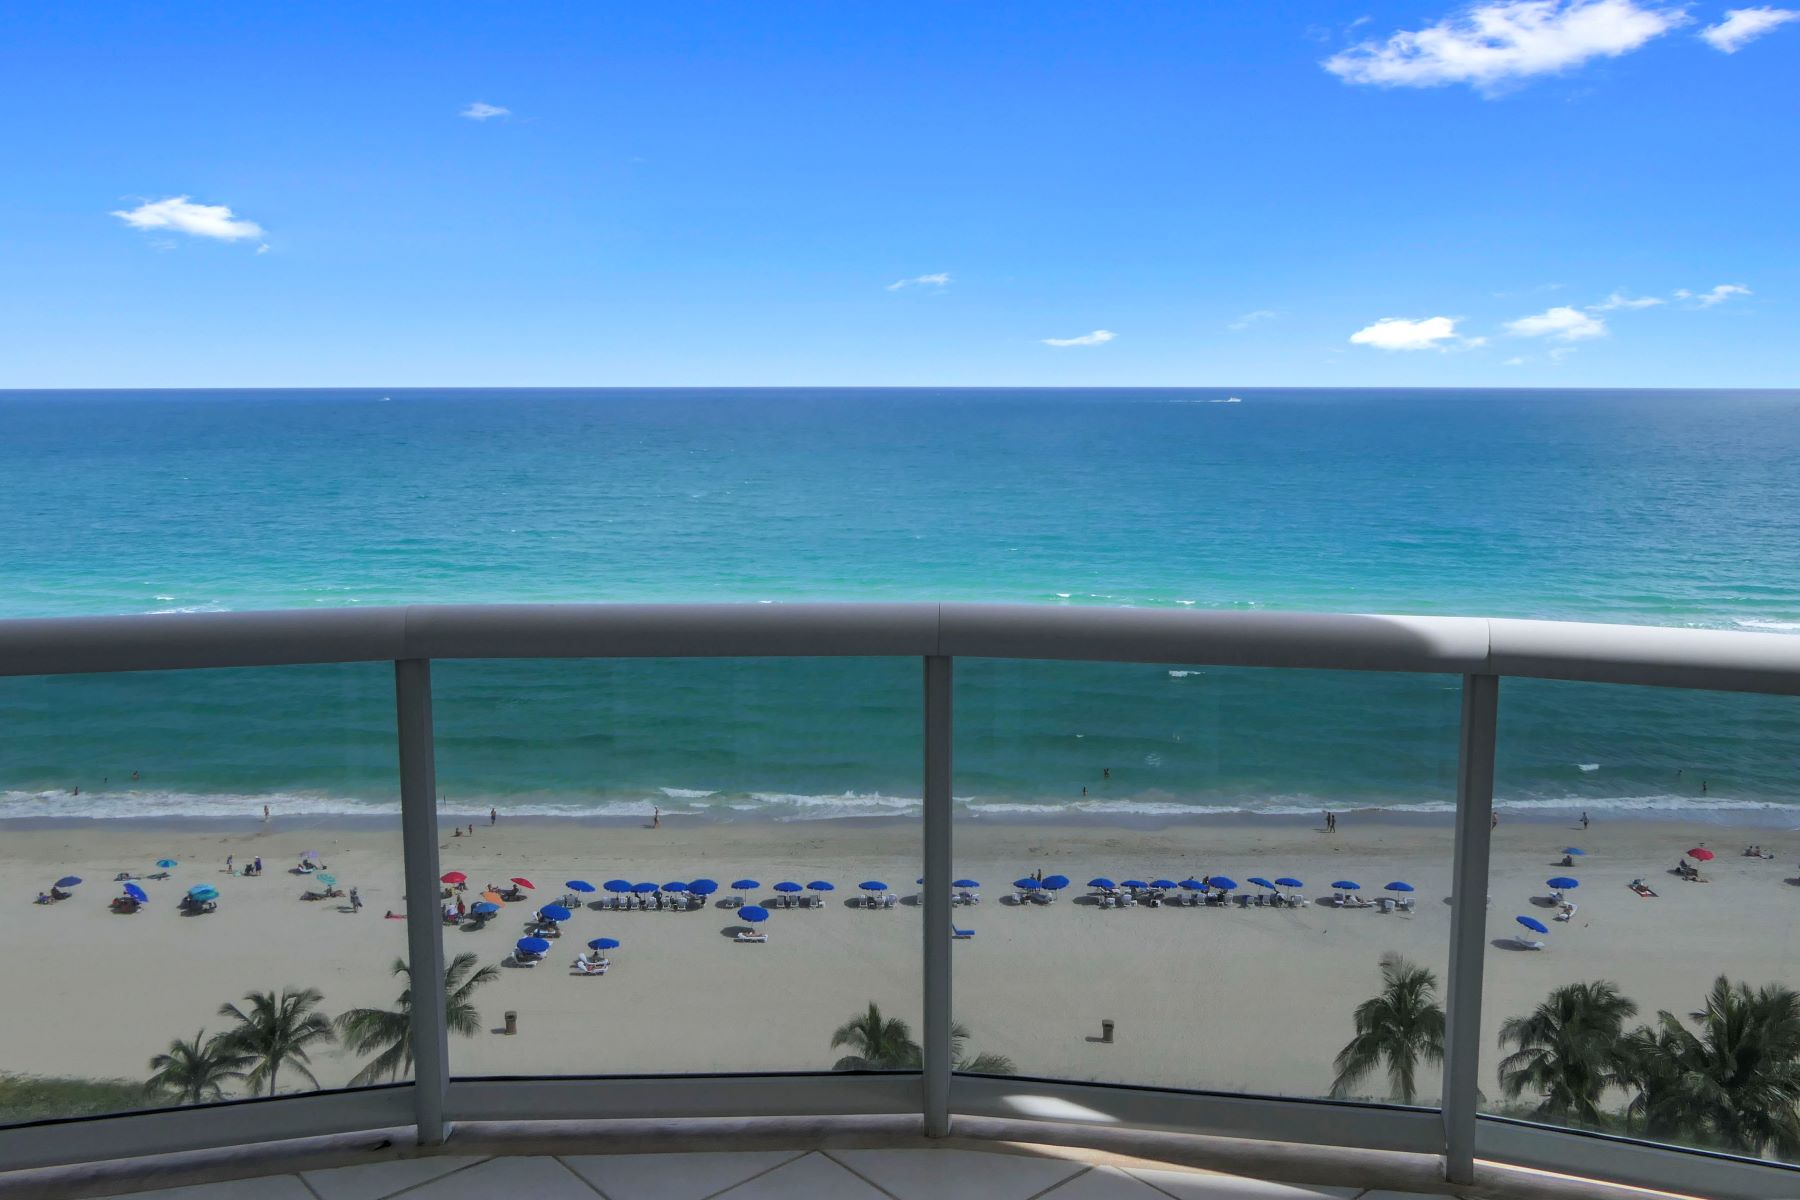 Condominium for Sale at 17555 Collins Ave #1405 17555 Collins Ave 1405, Sunny Isles Beach, Florida, 33160 United States